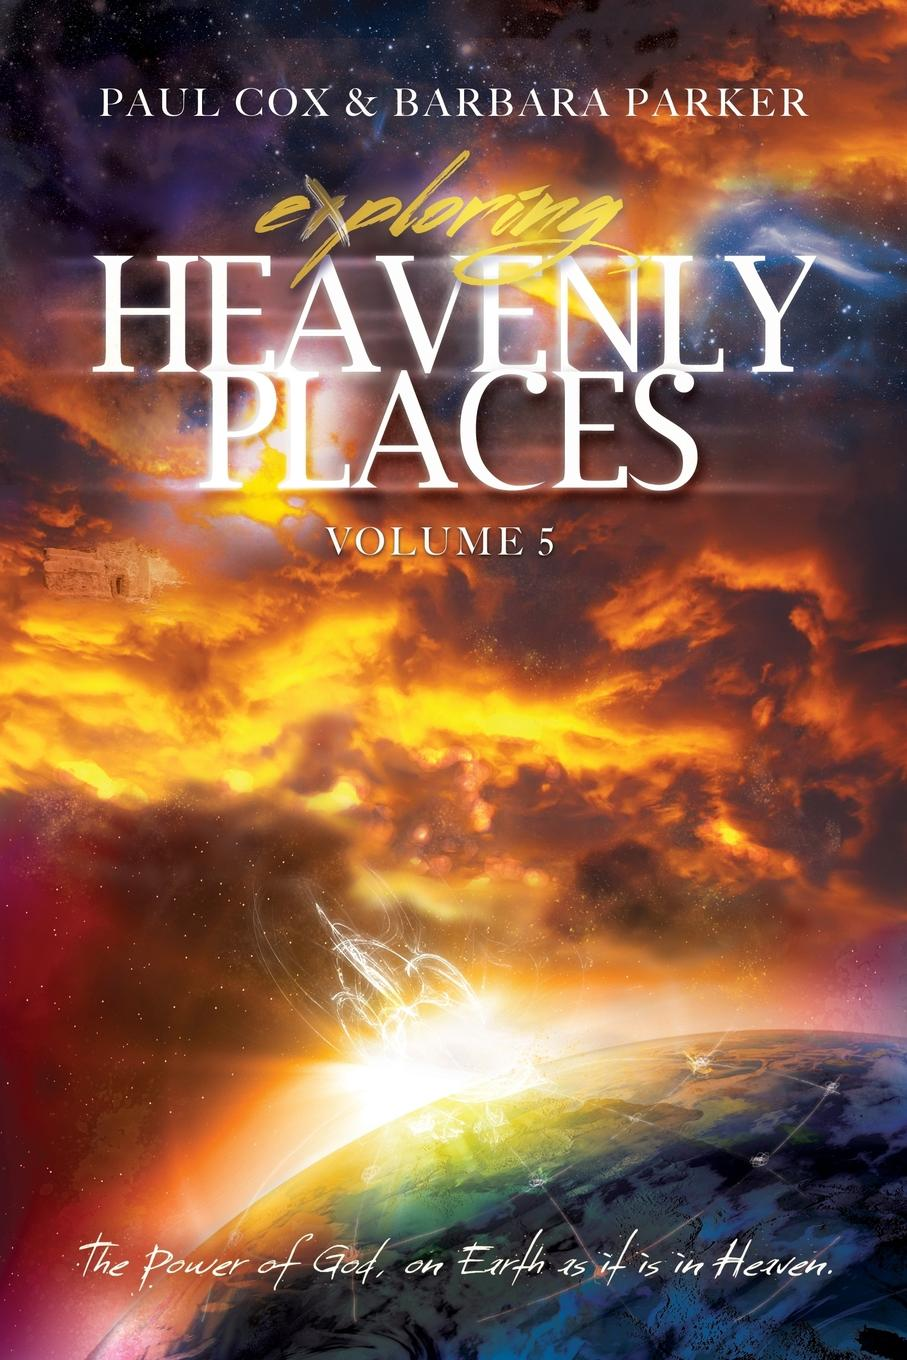 Paul Cox, Barbara Parker Exploring Heavenly Places - Volume 5 - The Power of God, on Earth as it is in Heaven angel angel on earth as it is in heaven white hot